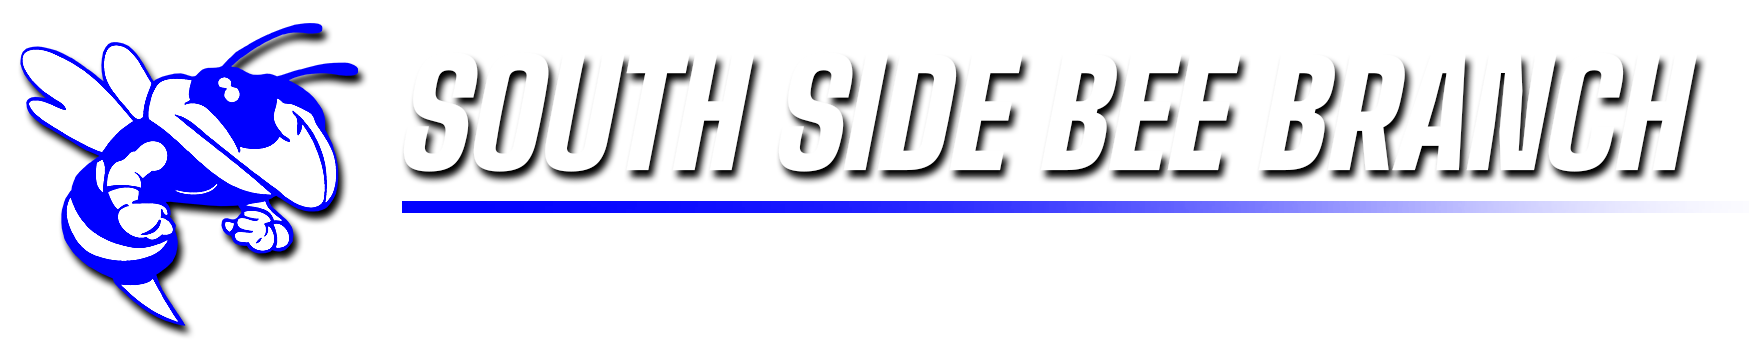 SOUTH SIDE BEE BRANCH Logo